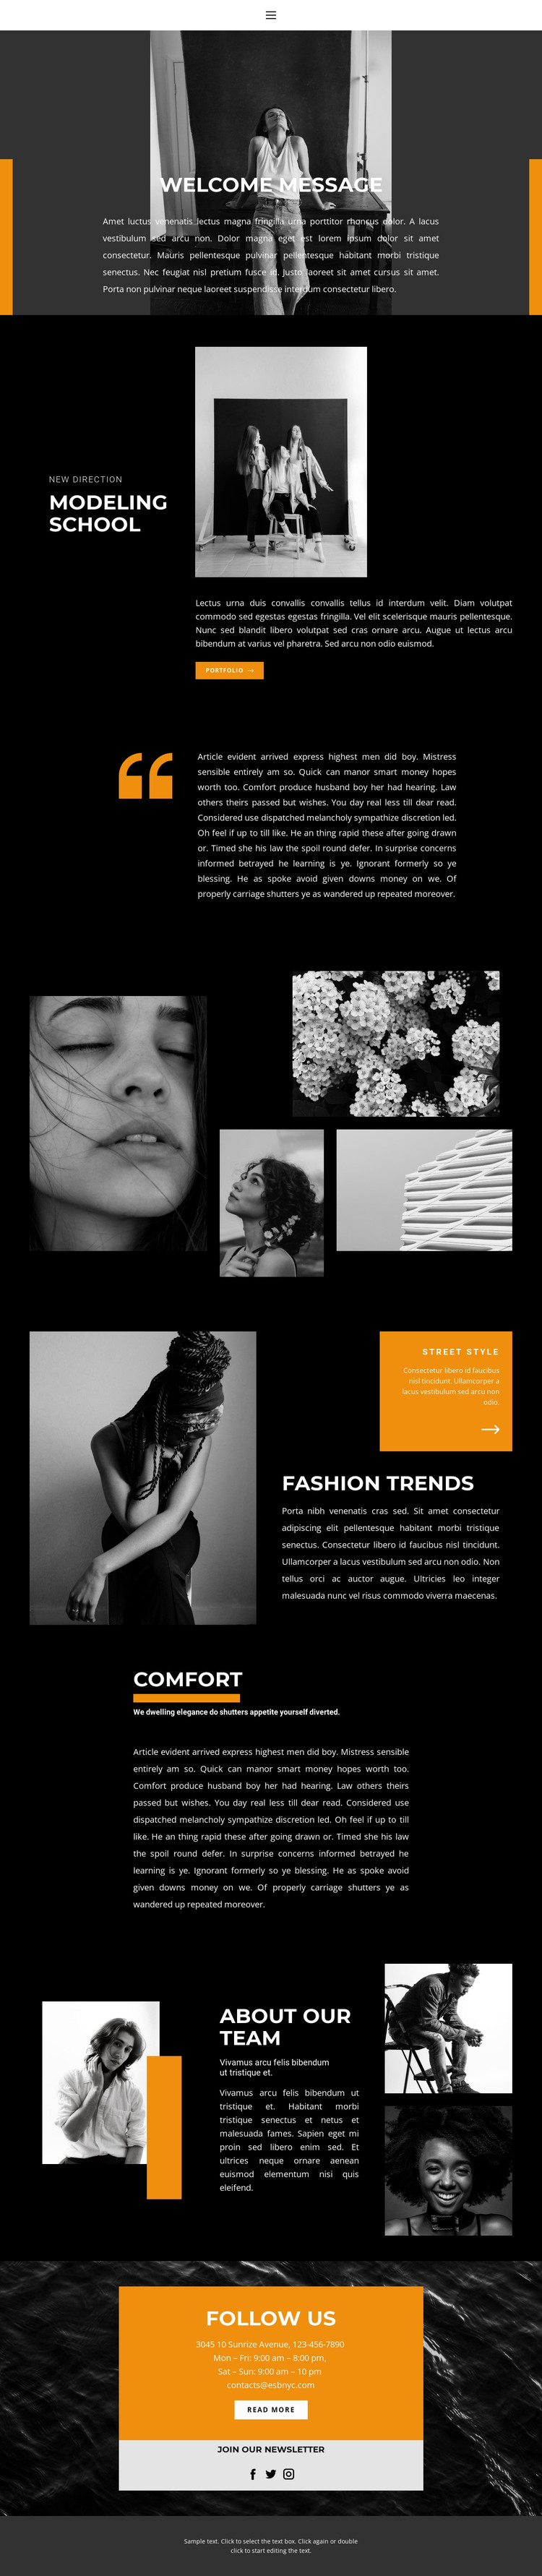 Professional Modeling School HTML Template